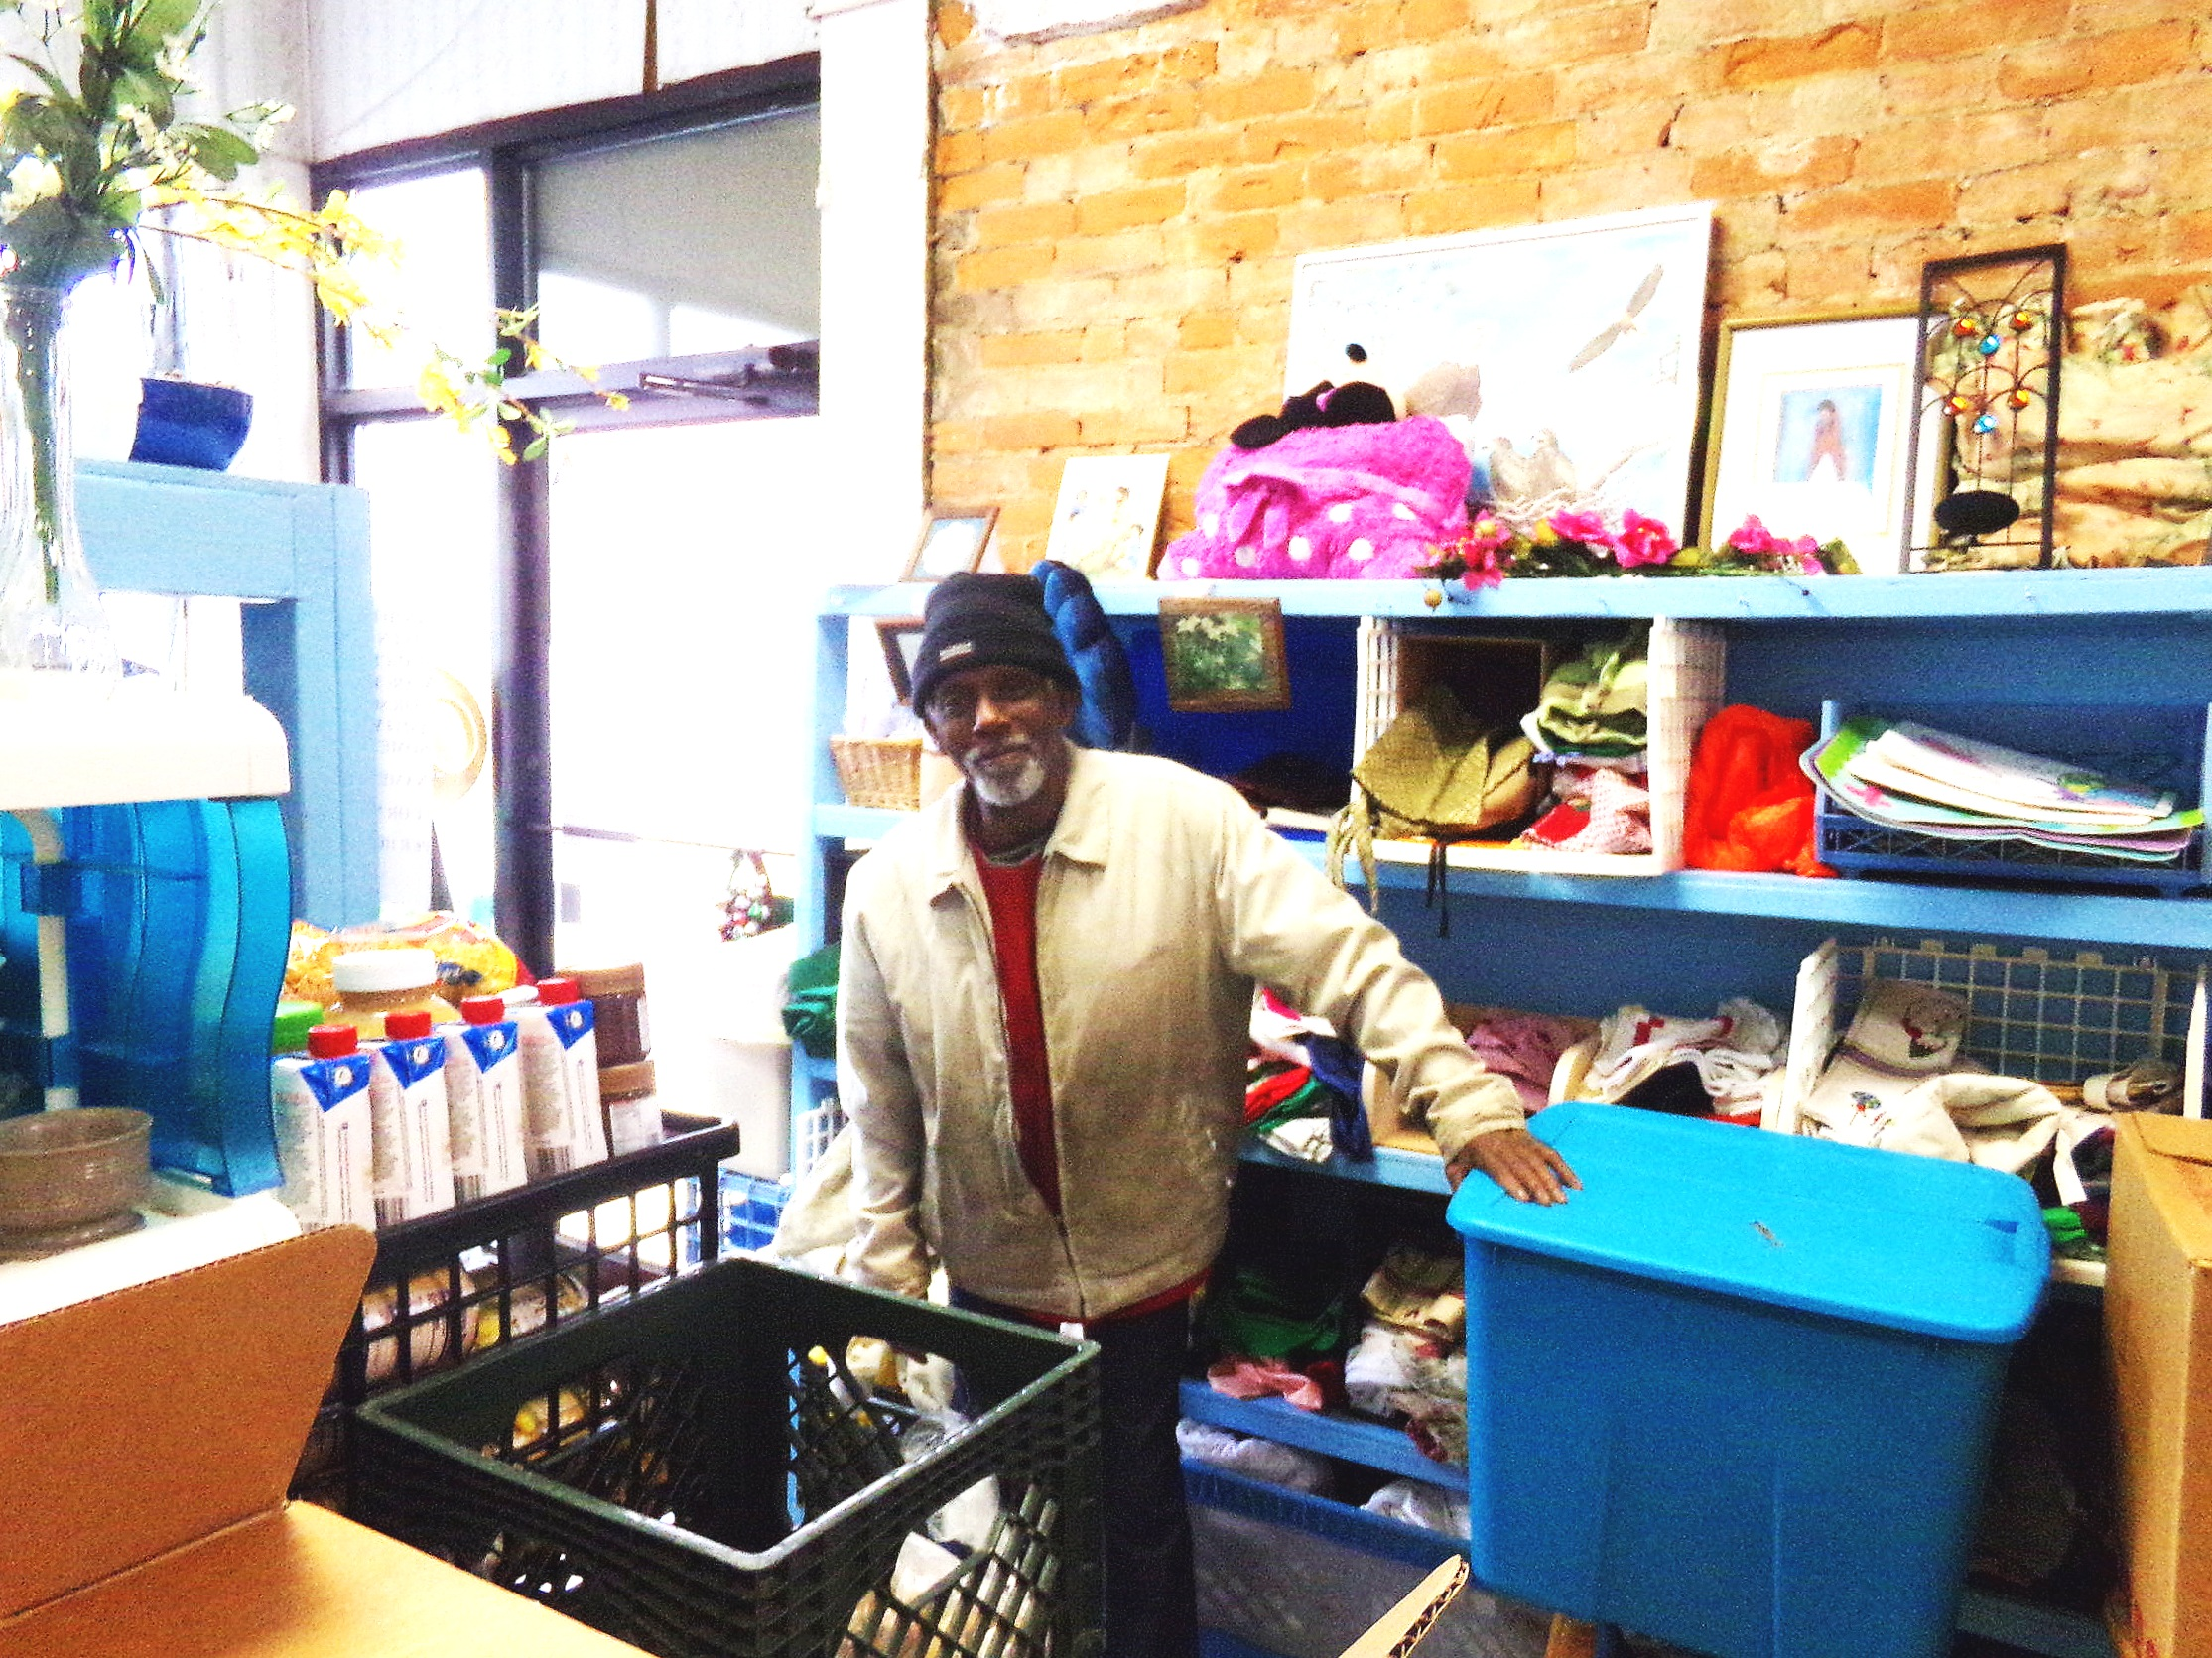 John, a volunteer and community member, is just one of the many who help keep Camp Cupboard and Closet running